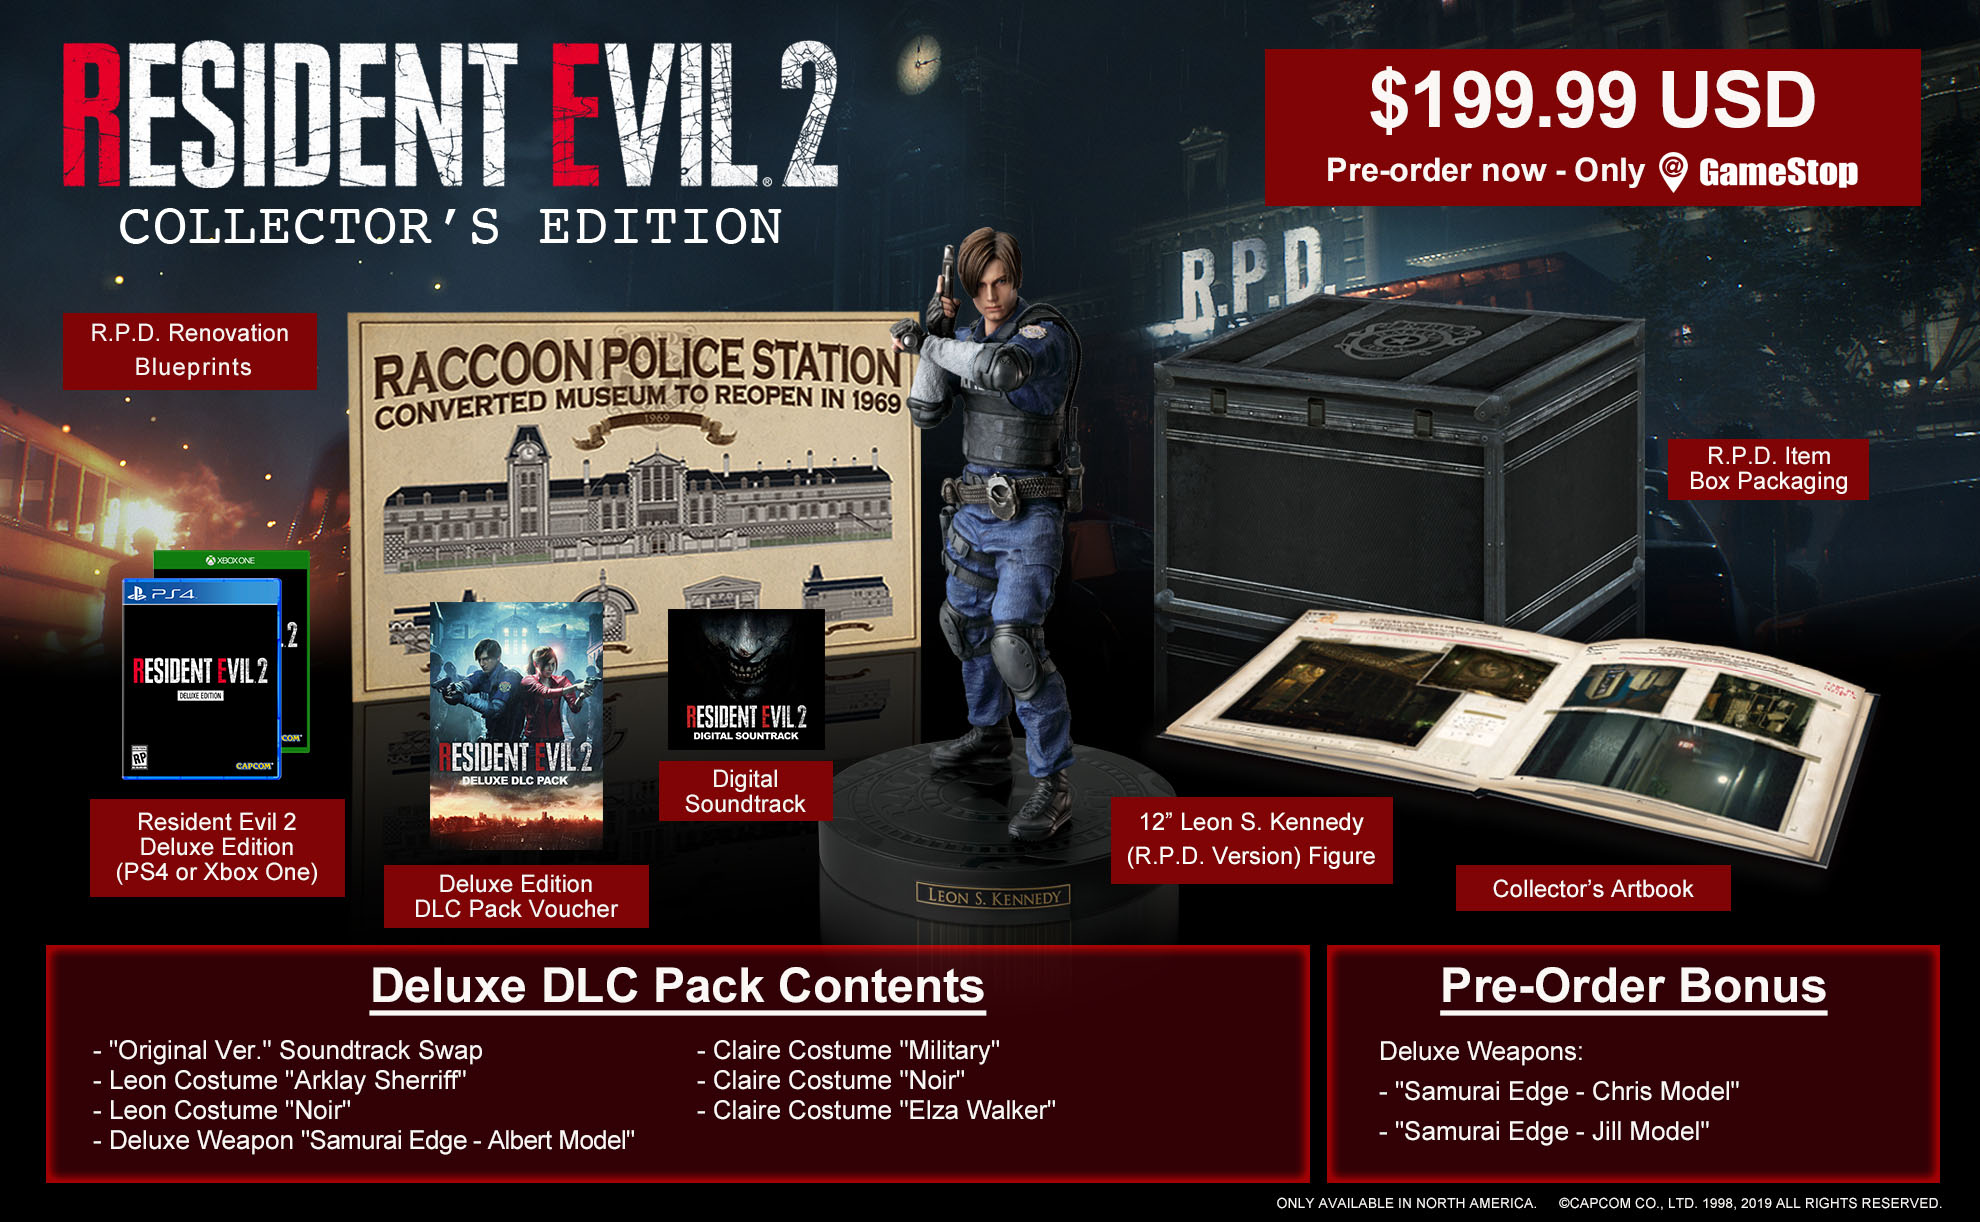 Resident Evil 2 Collectors Edition Announced Will Cost 199